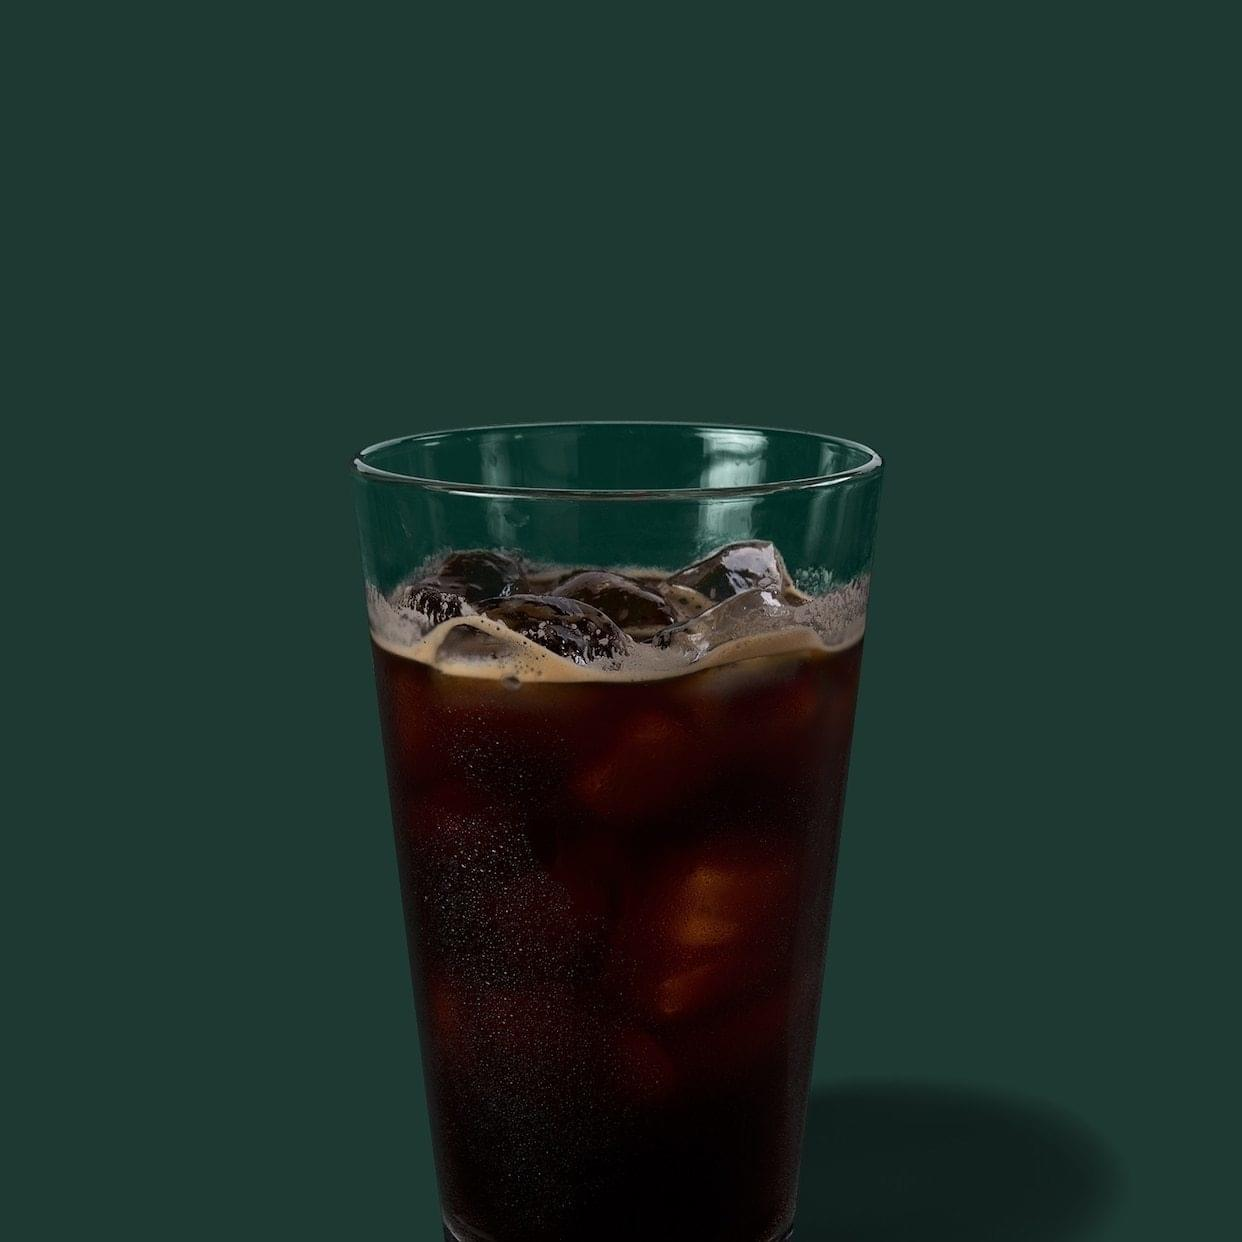 Starbucks Iced Espresso Nutrition Facts